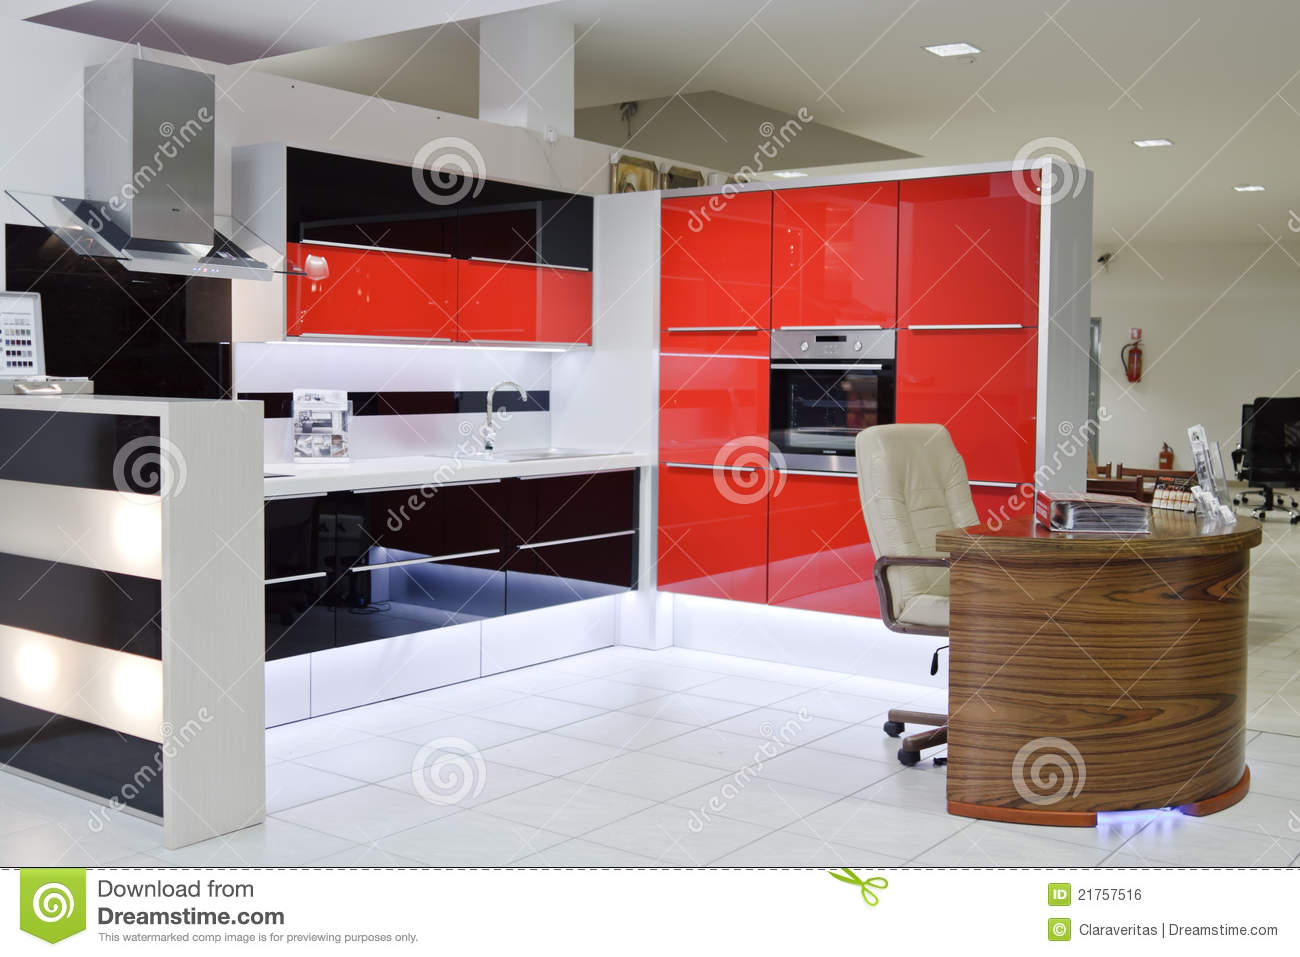 Luxury modern kitchen royalty free stock image image for Luxury modern kitchen